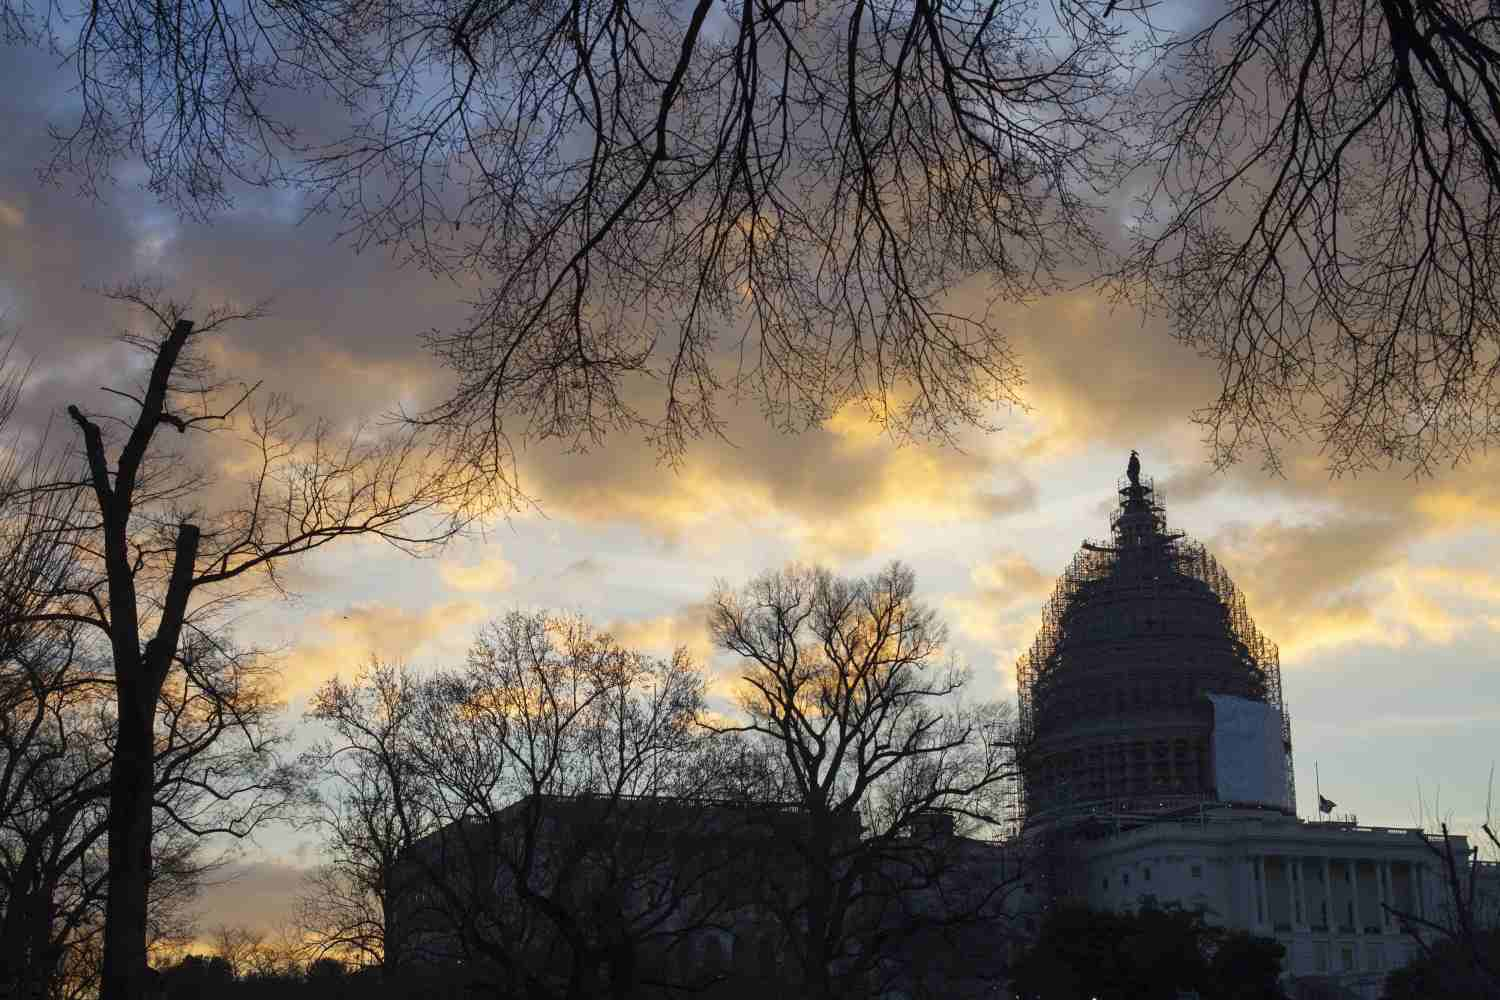 The sun rises over the Capitol, covered in scaffolding for repairs, in Washington on Jan. 5, 2015.